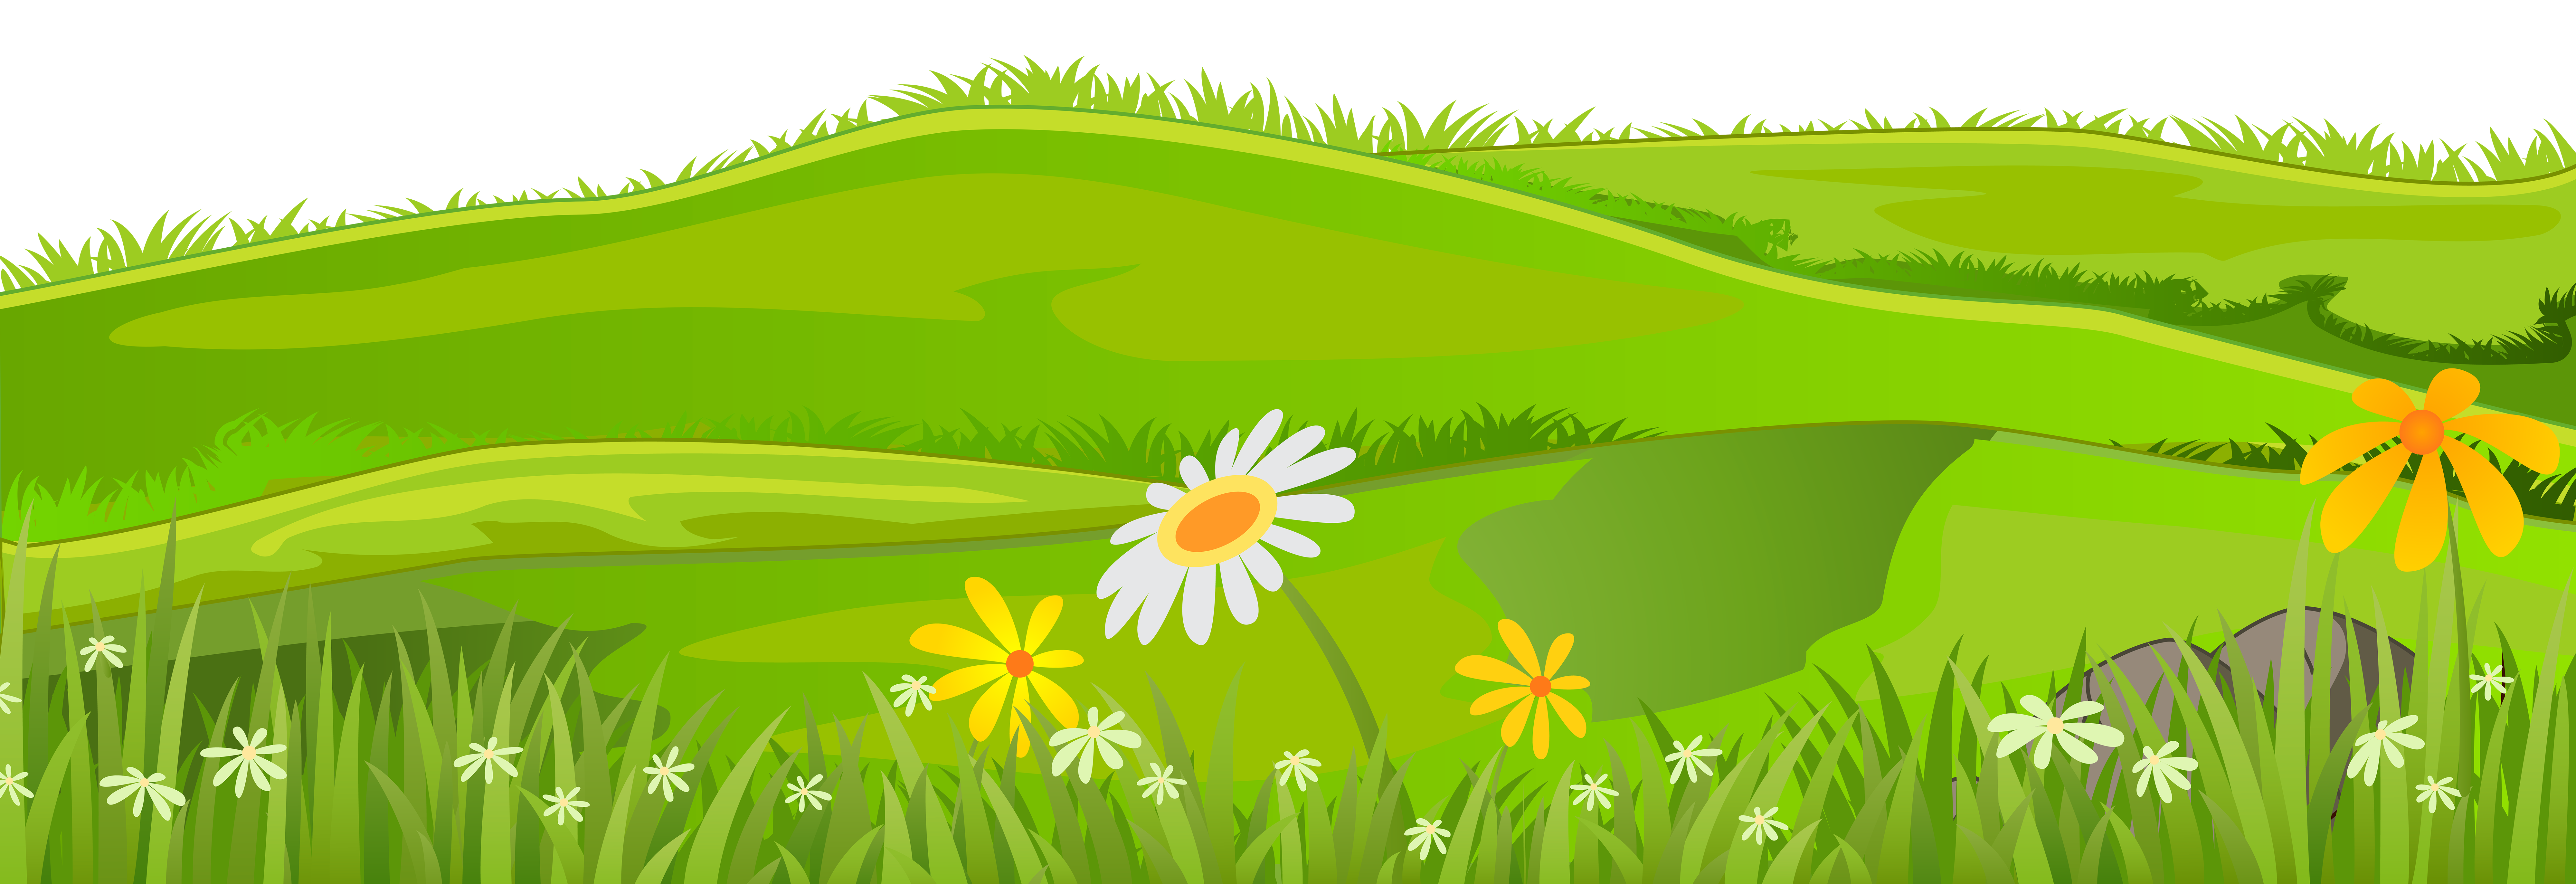 Tree sun grass landscape clipart free download Grass Cover PNG Clip Art Image | Gallery Yopriceville - High ... free download